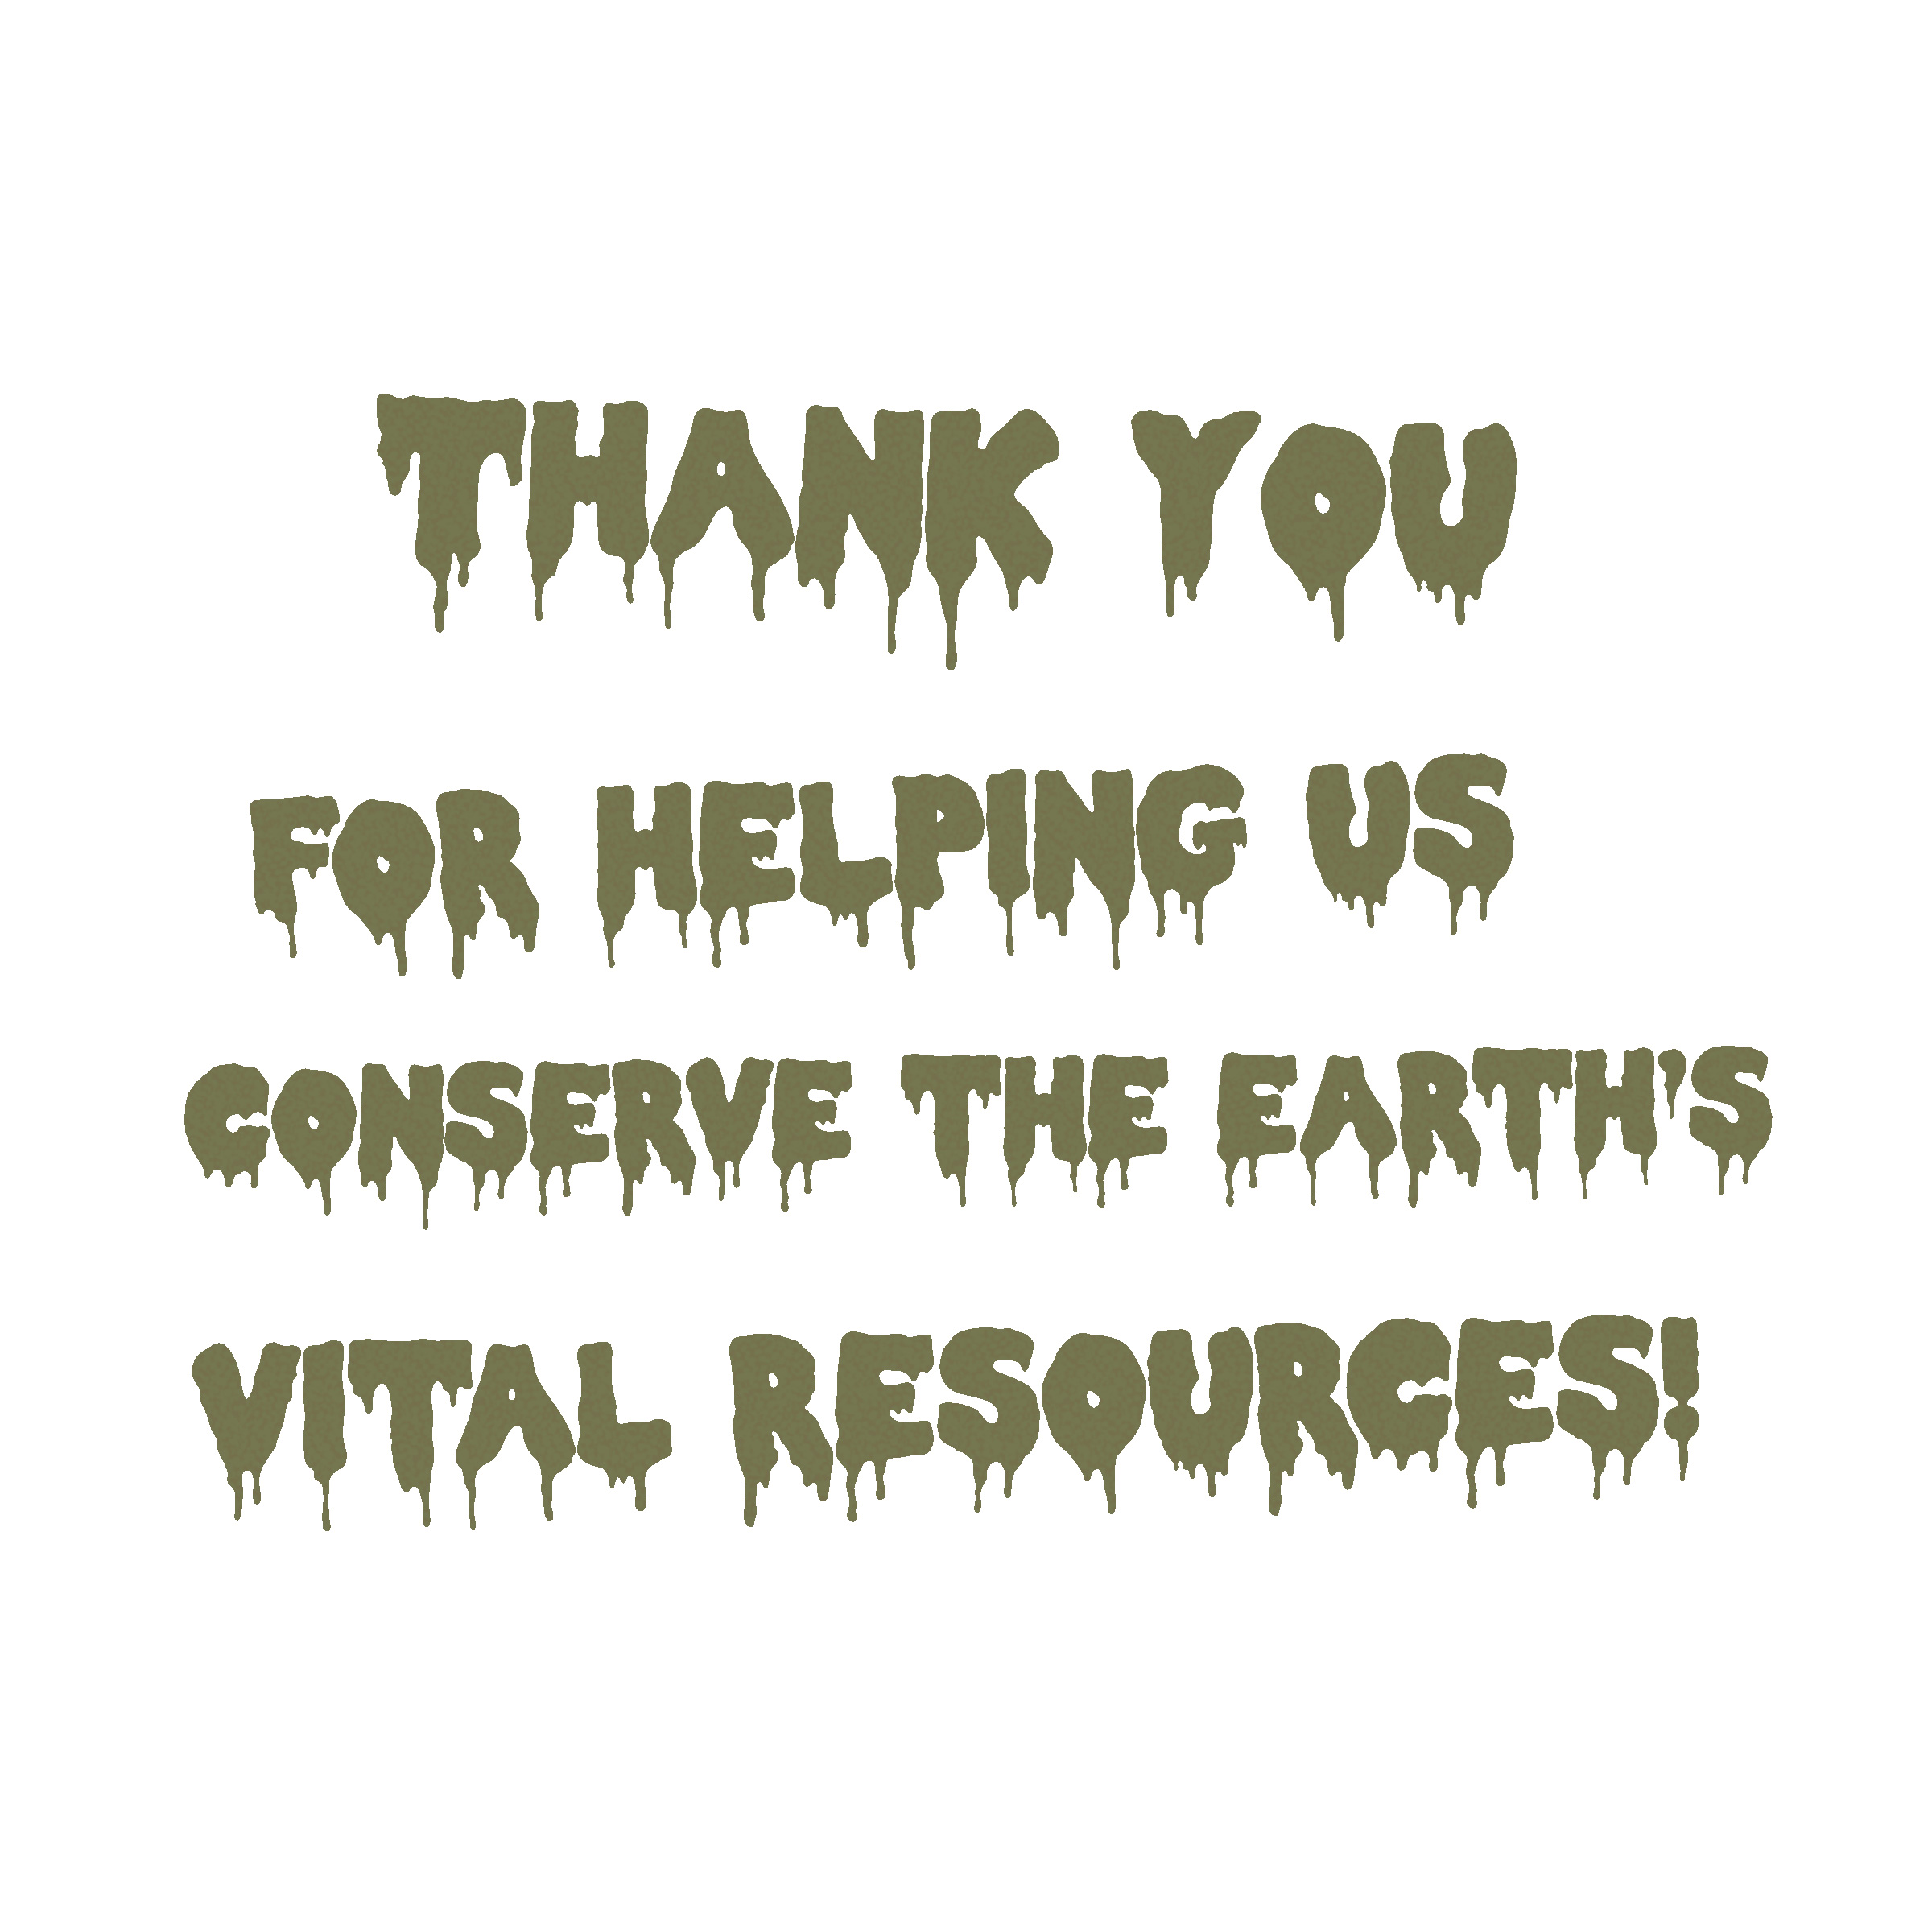 Illustration of dripping blood-style horror movie lettering, spelling out: 'Thank you for helping us conserve the Earth's vital resources!'